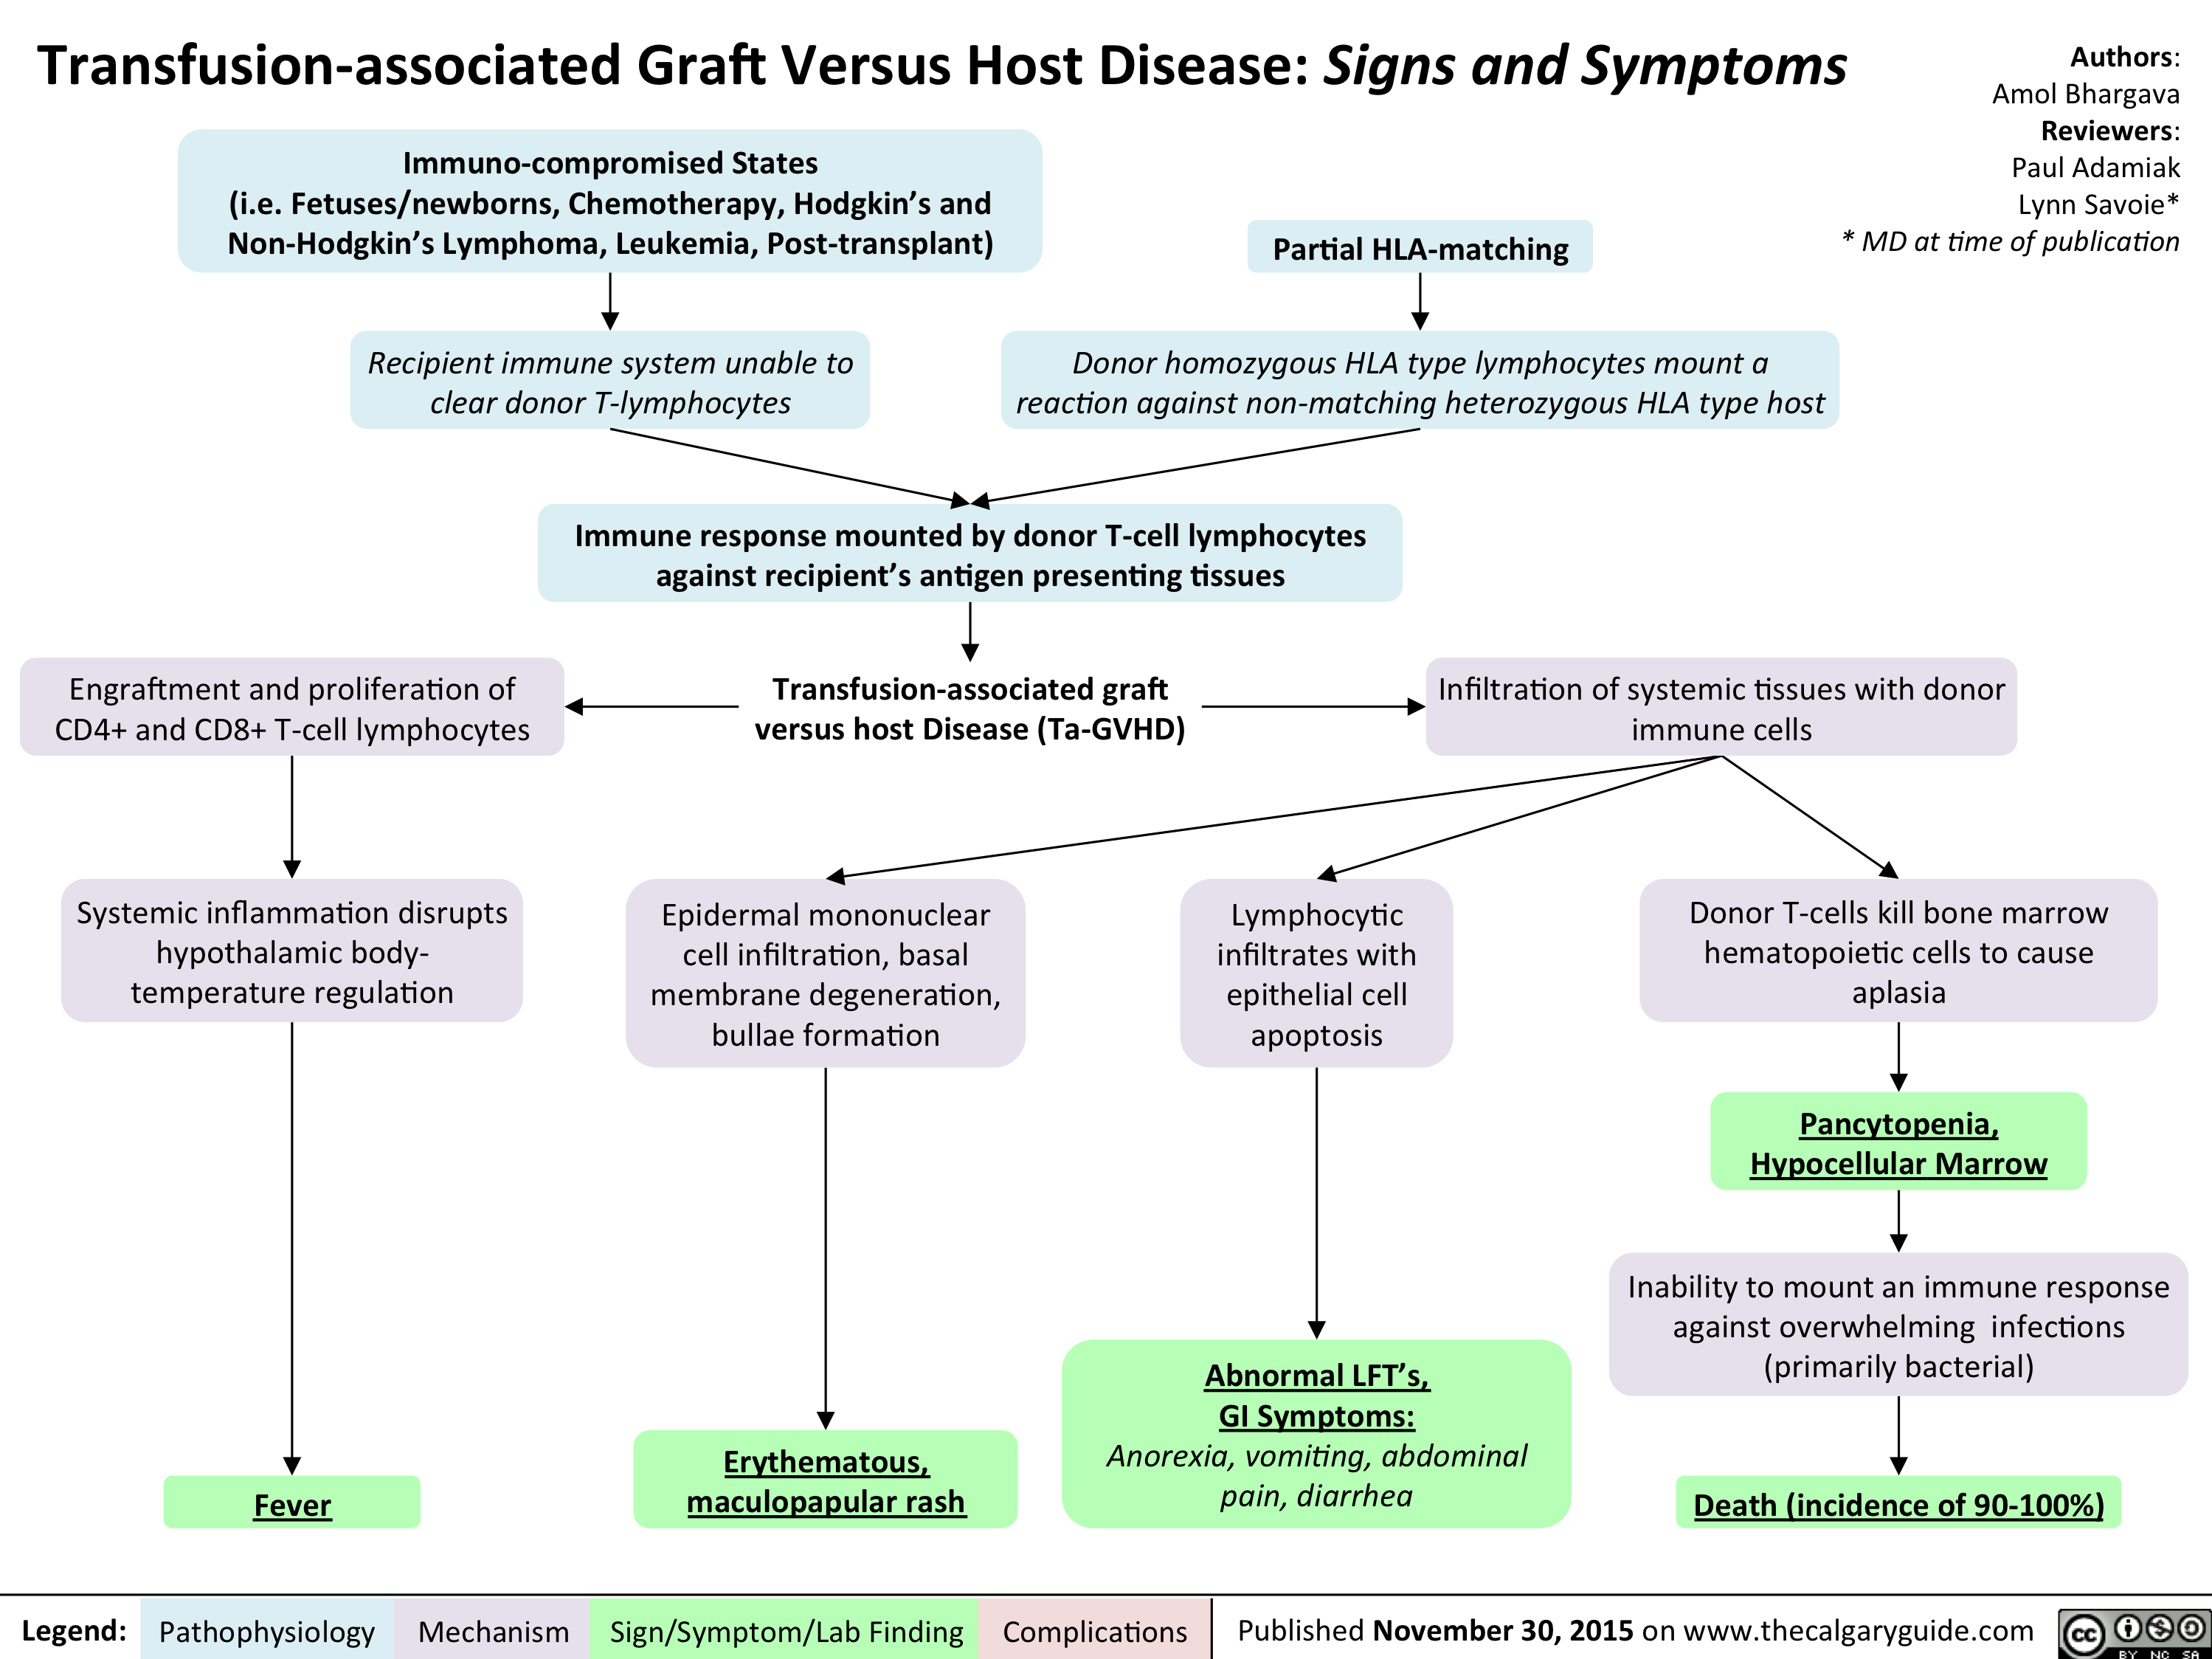 Transfusion-associated Graft Versus Host Disease - Signs and Symptoms